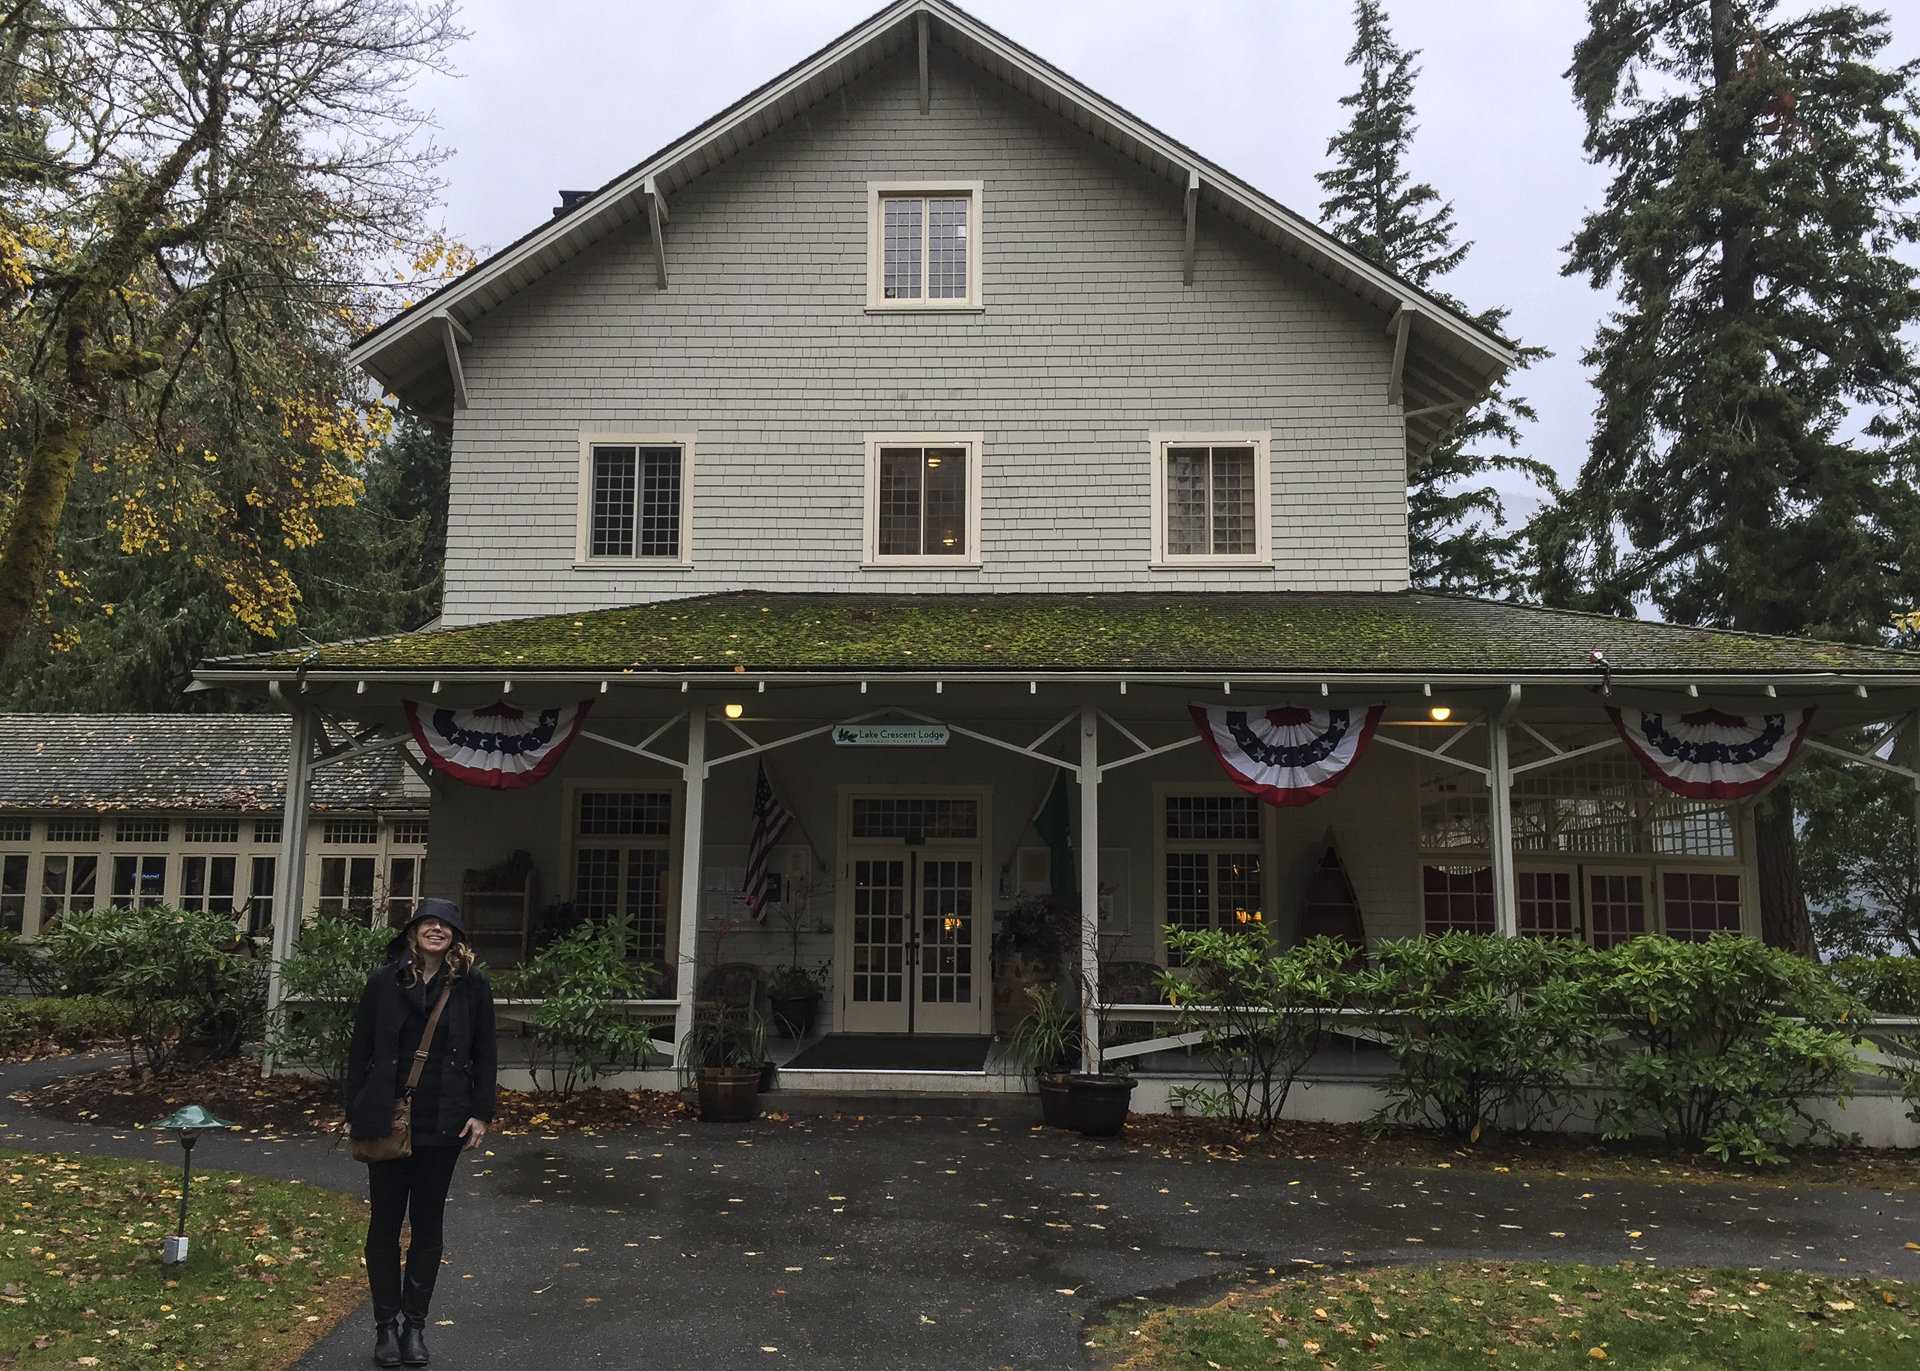 Justine standing out front of Lake Crescent Lodge.